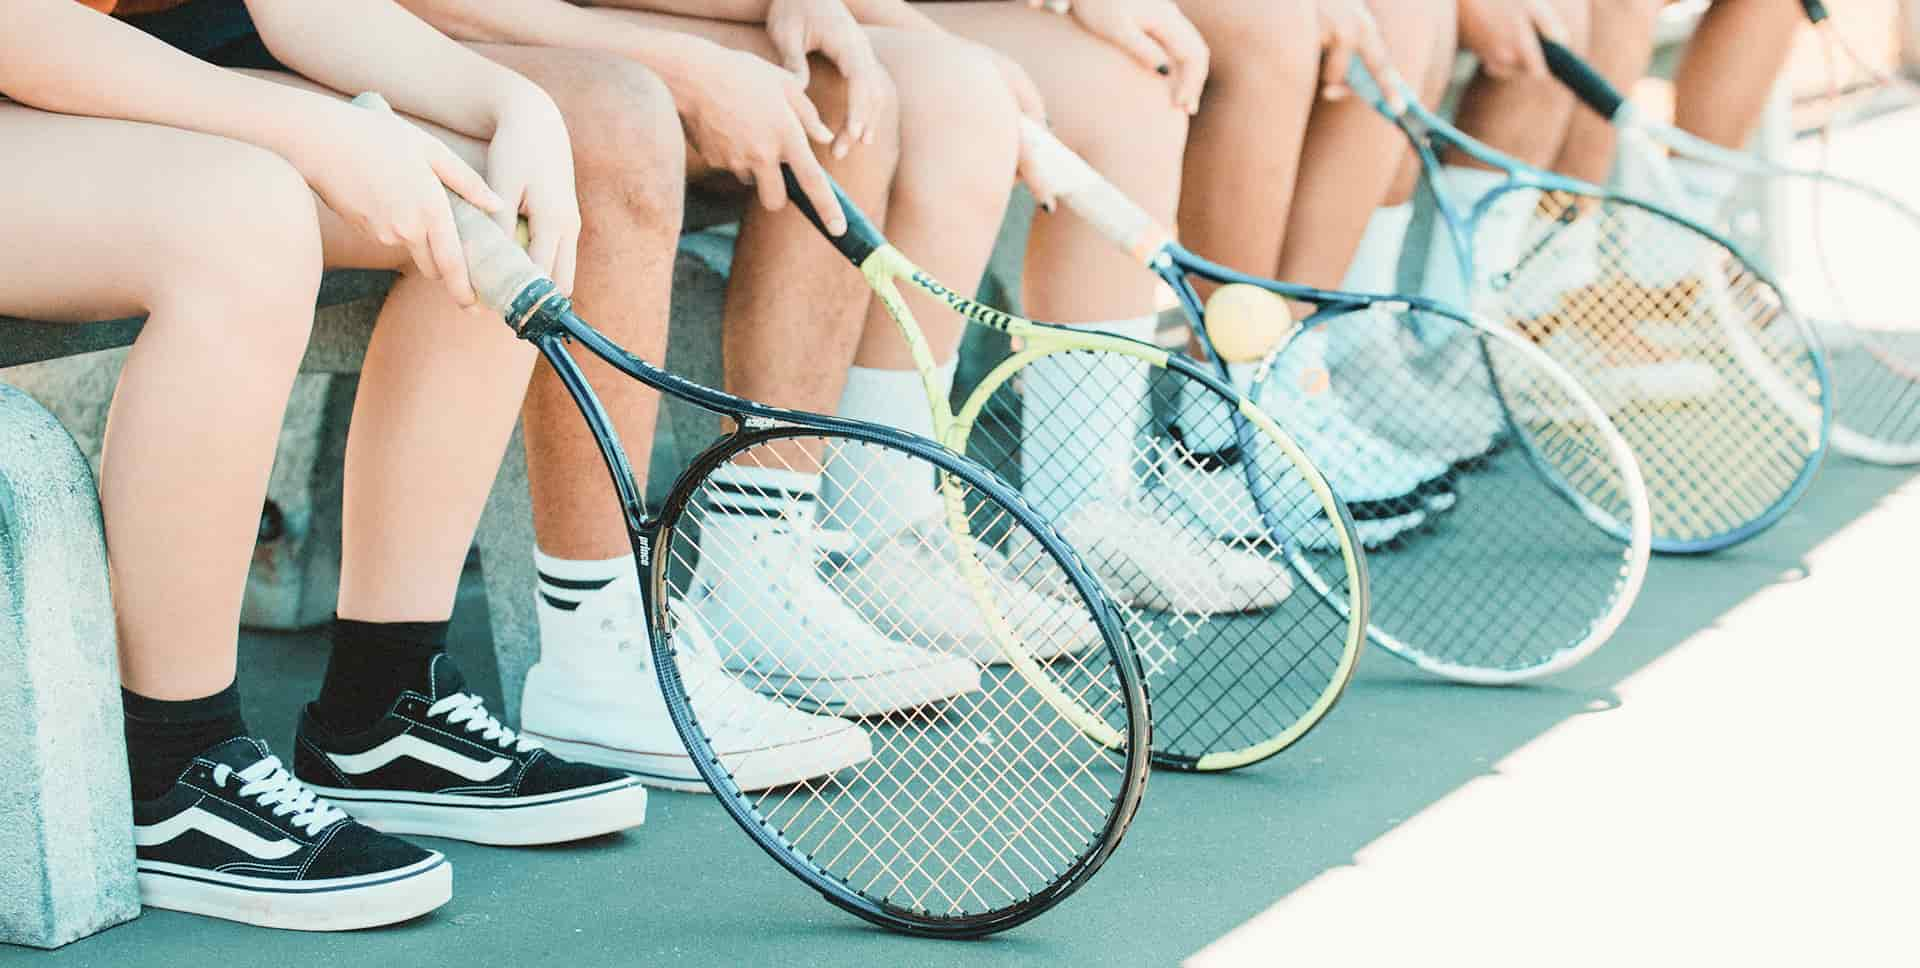 Tennis betting: the guide to betting well and winning